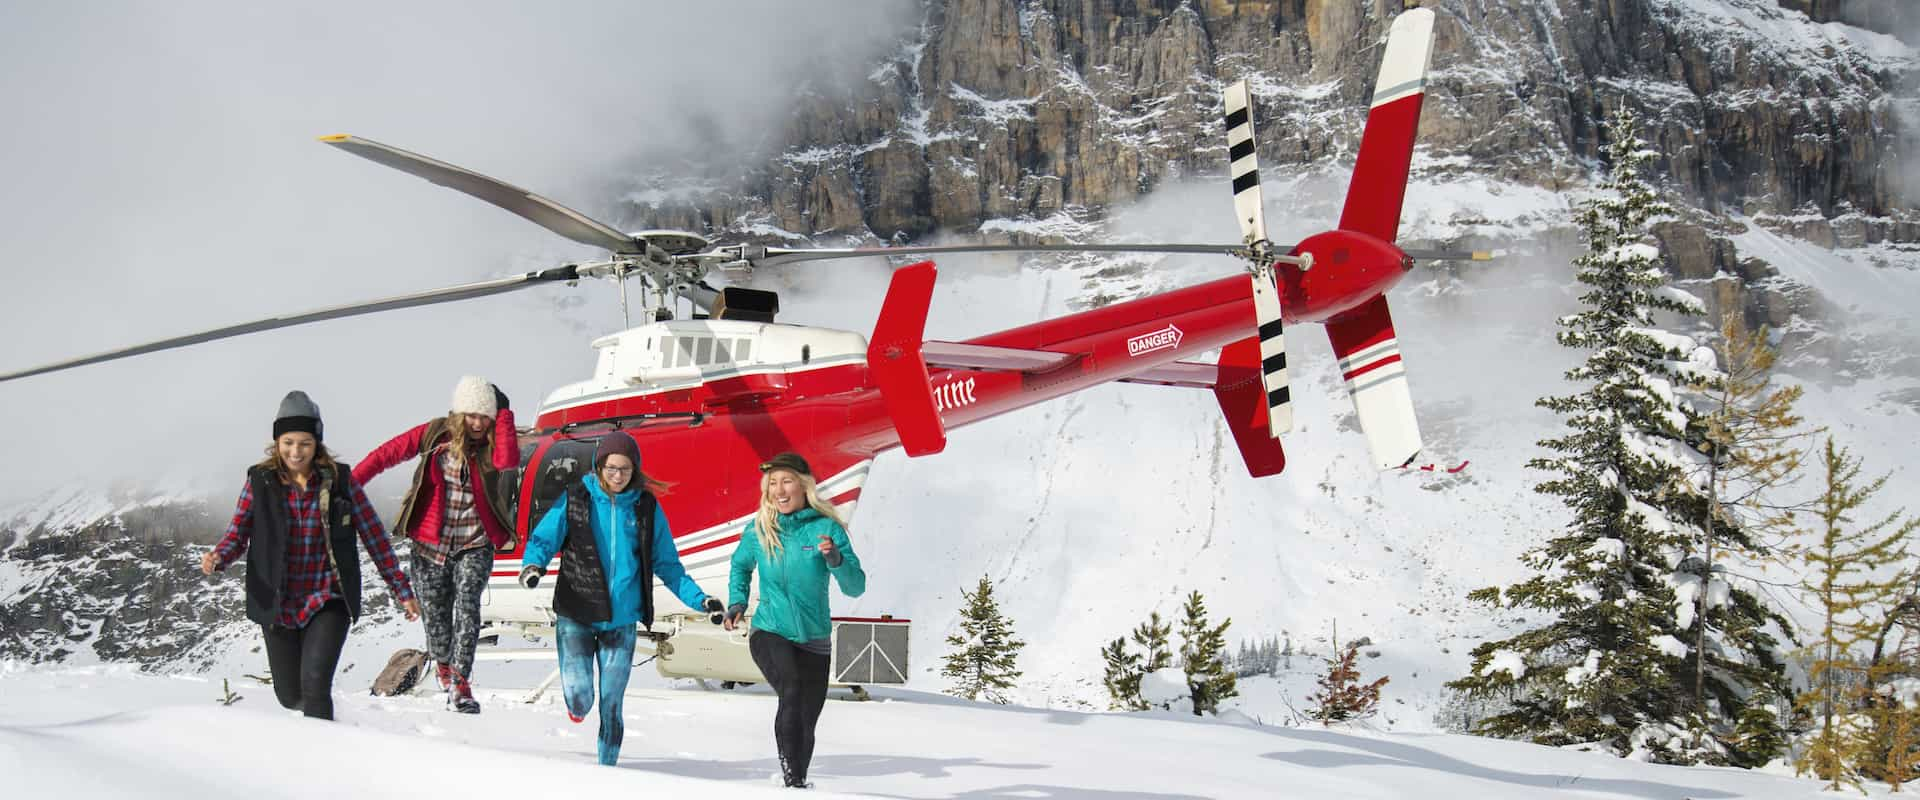 Take a private helicopter sightseeing flight to Marvel Pass near Banff National Park